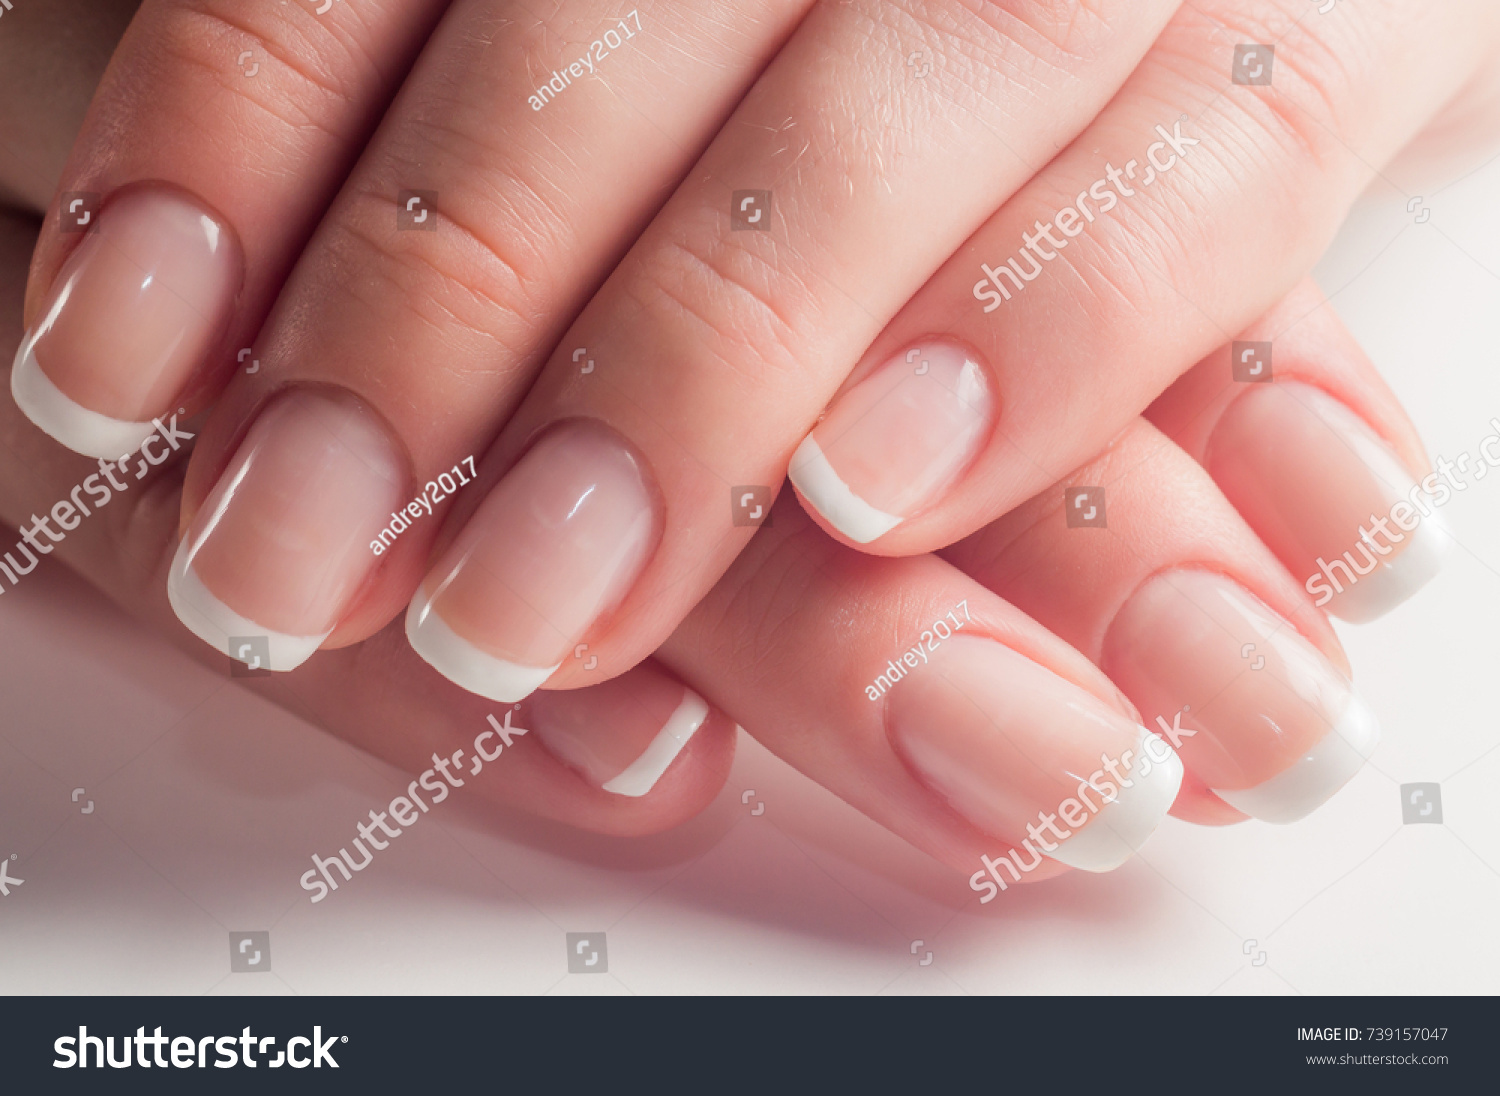 Manicure French Manicure Nail Polish Paint Stock Photo (Download Now ...